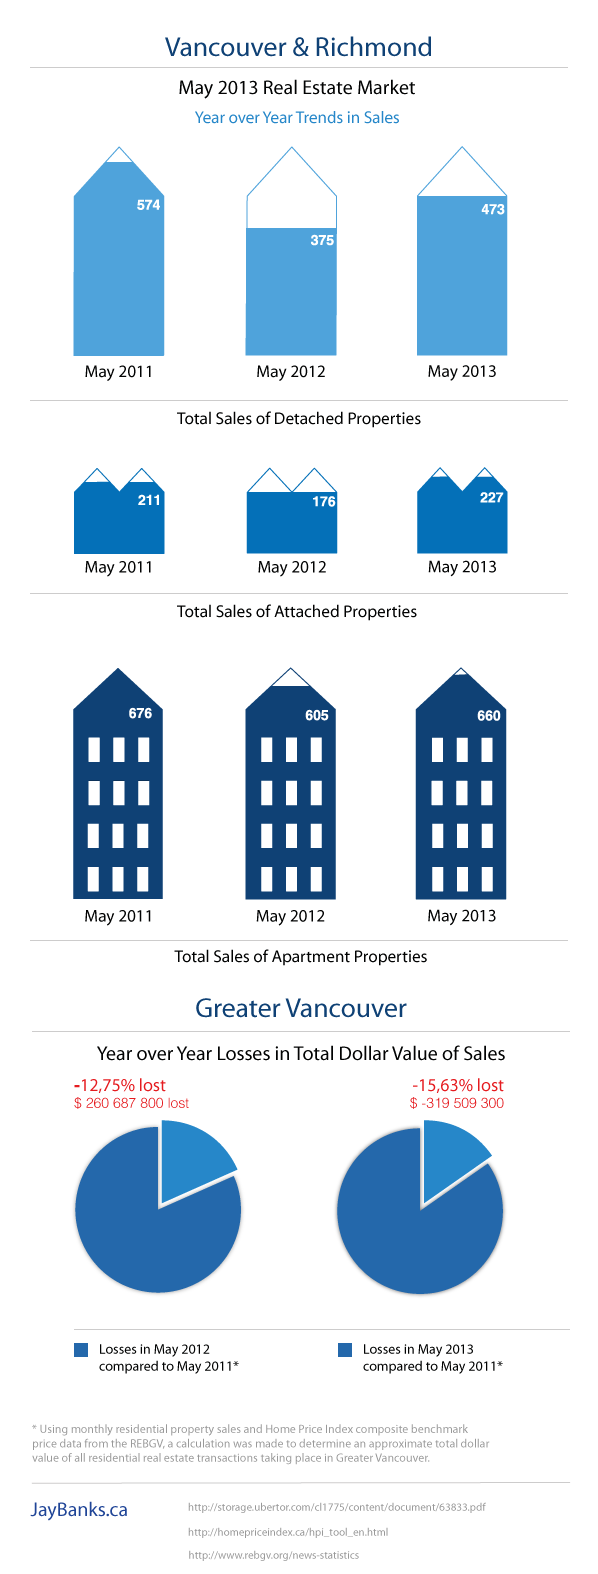 Vancouver Real Estate Market Report May 2013 Infographic by Jay Banks1